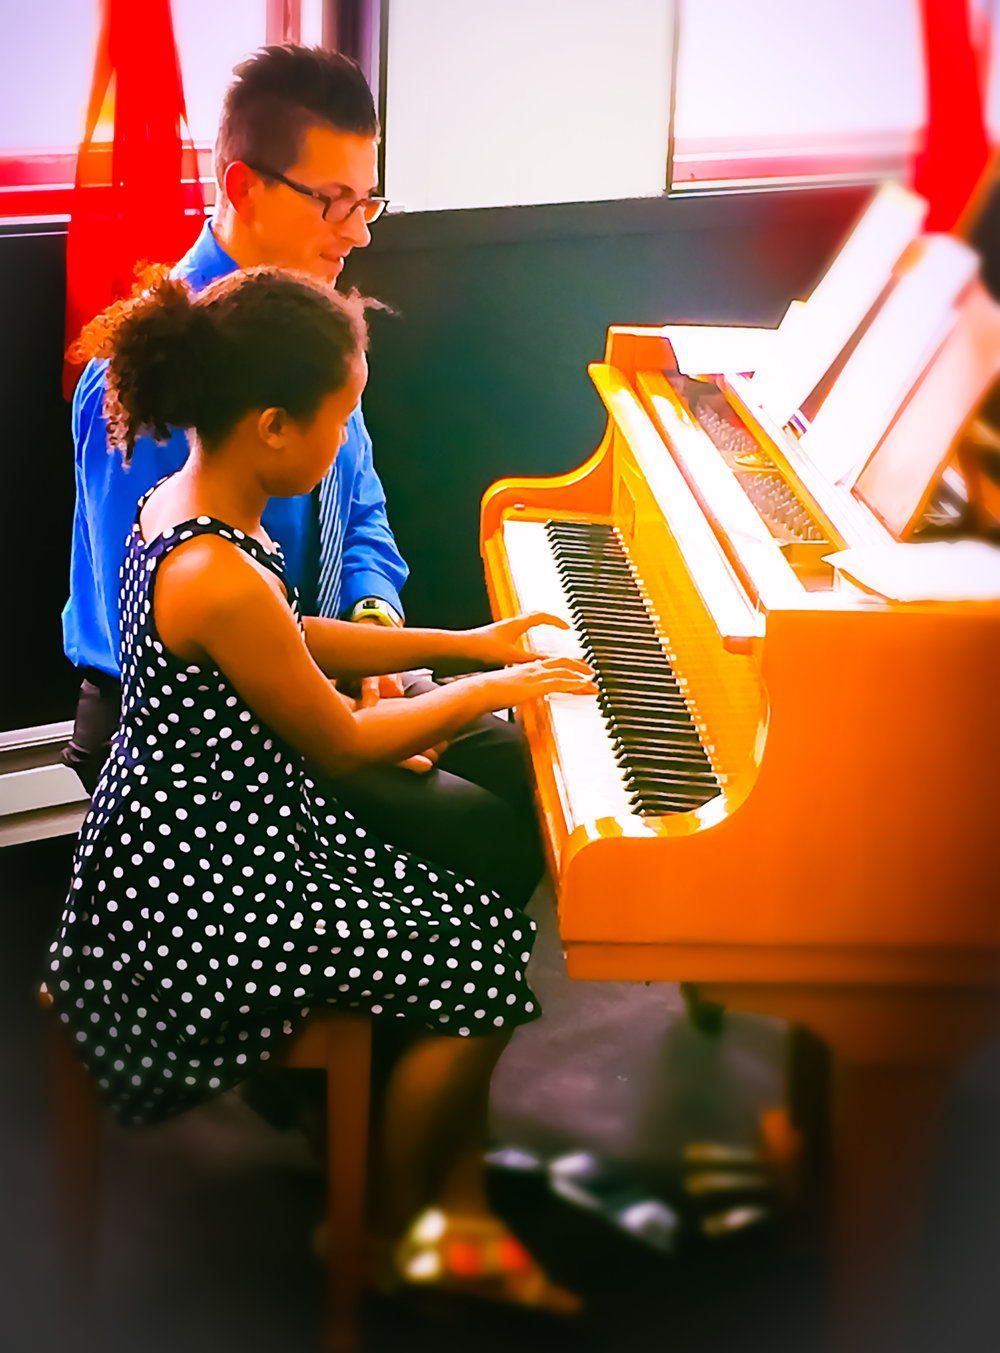 Private piano lessons are available for ages 4+. Lessons are held once per week for 4, 8 or 12 week sessions in our beautiful art gallery.